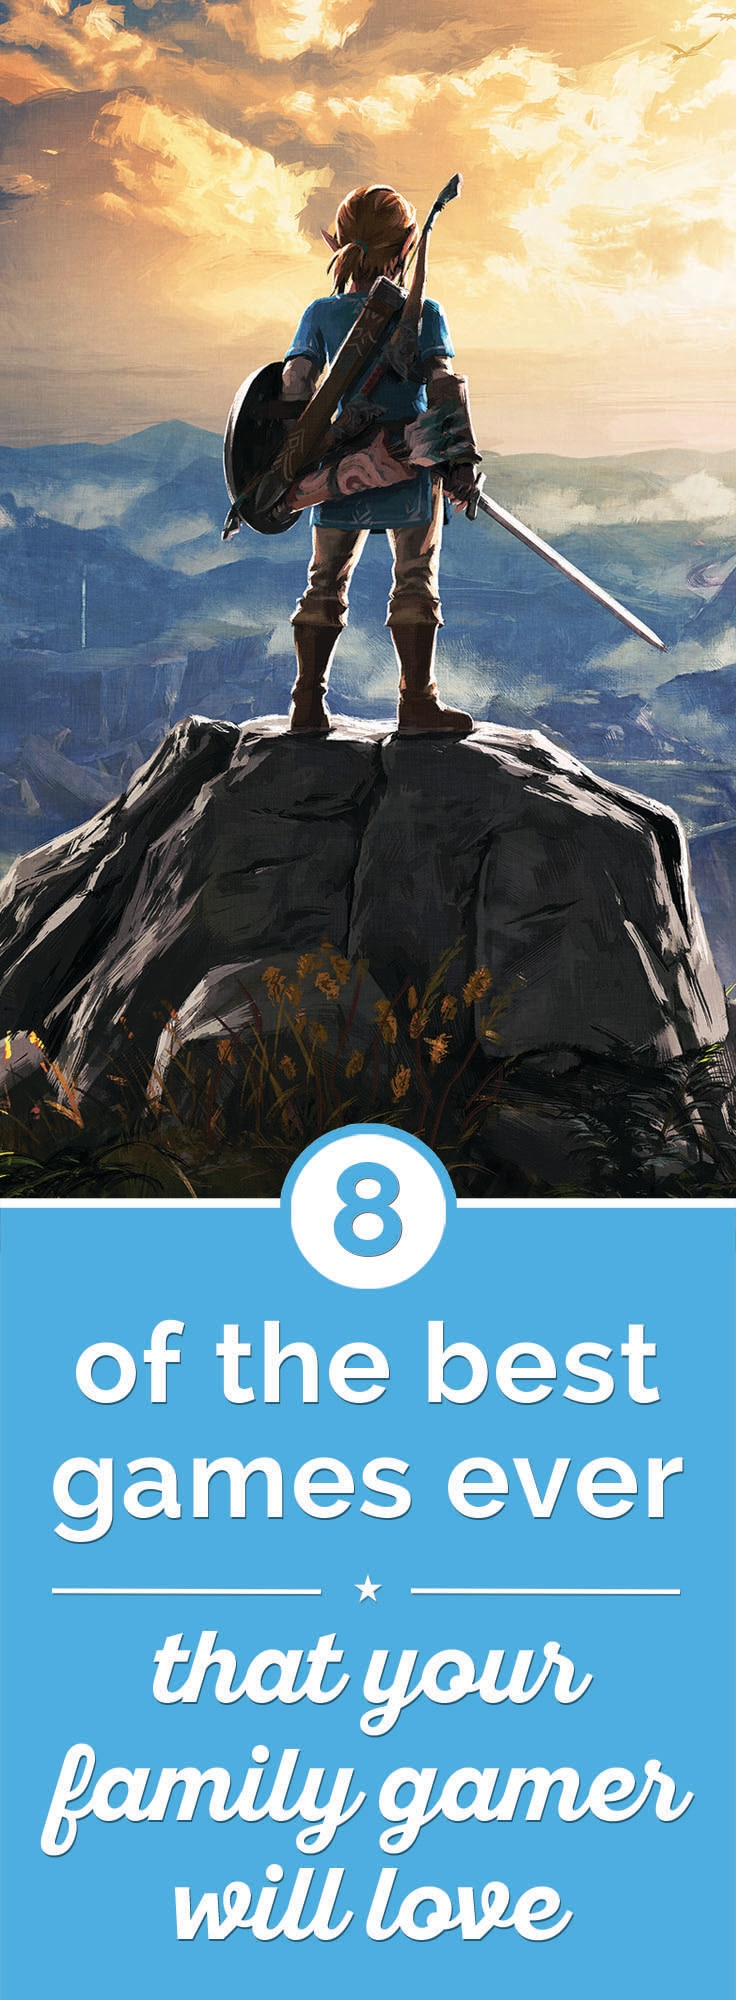 8 of the Best Games Ever: The Last Guardian | thegoodstuff